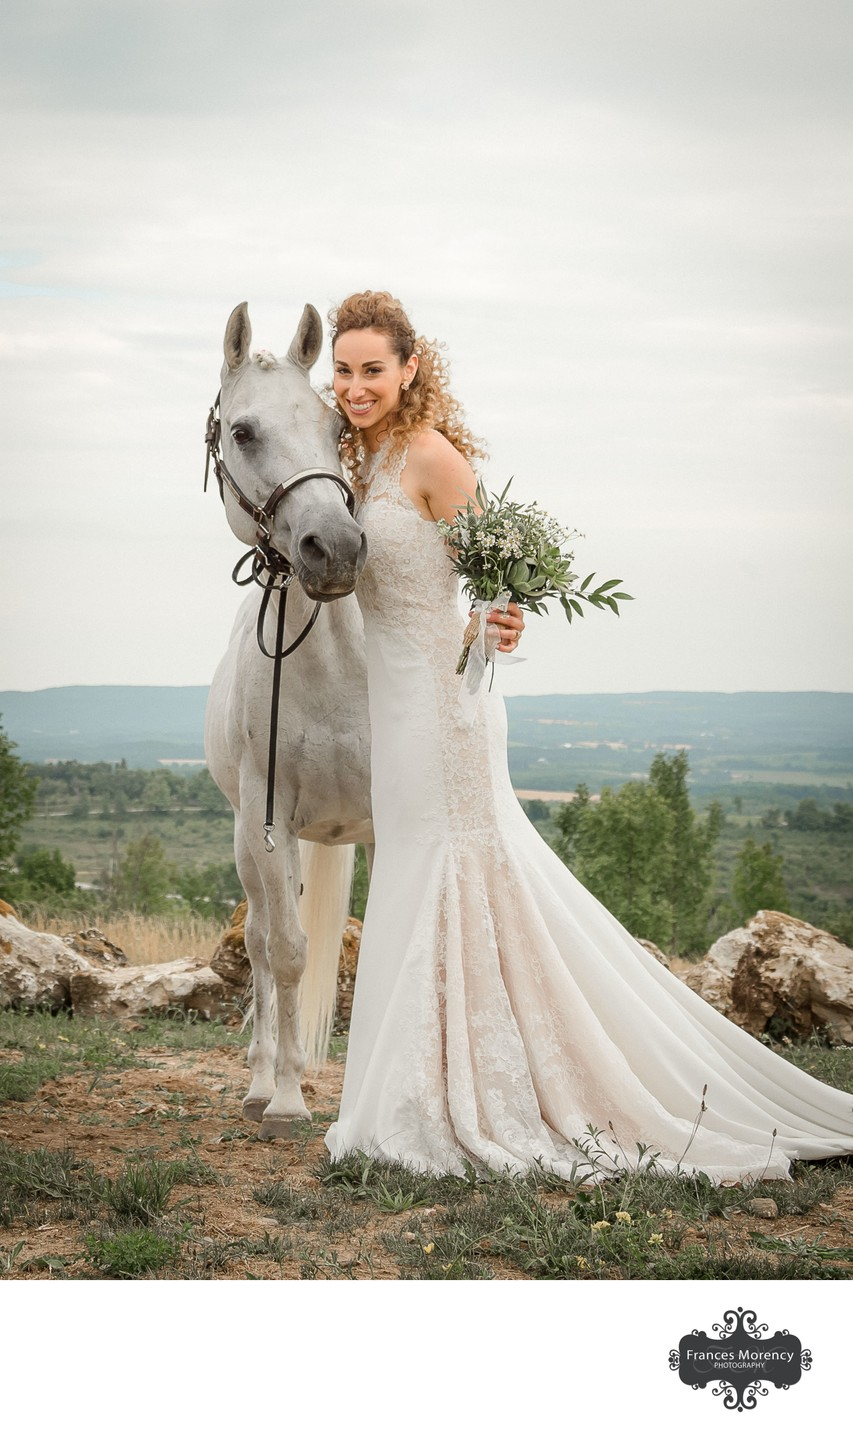 Bride Portrait with Horse:  Thornbury Wedding Photo